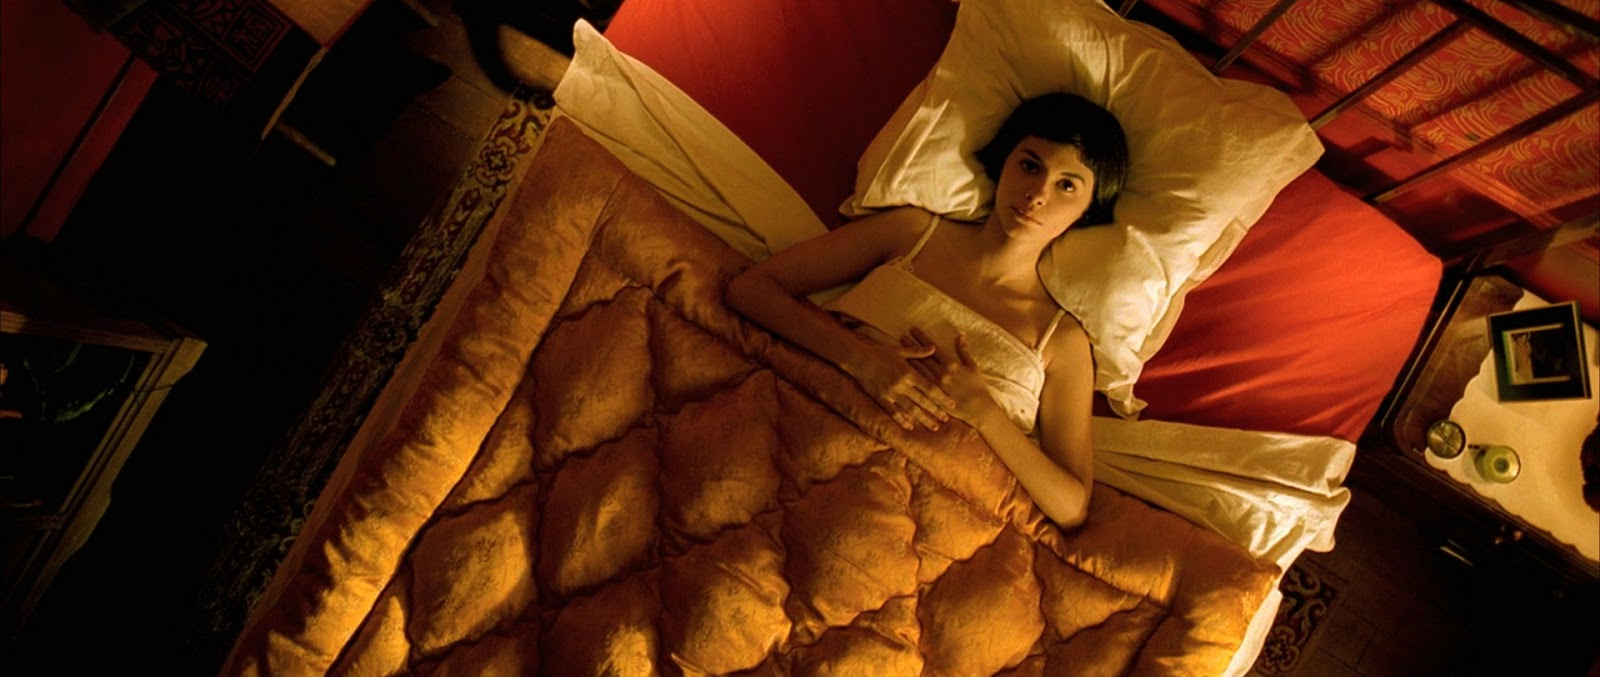 Amelie-bedroom-movie